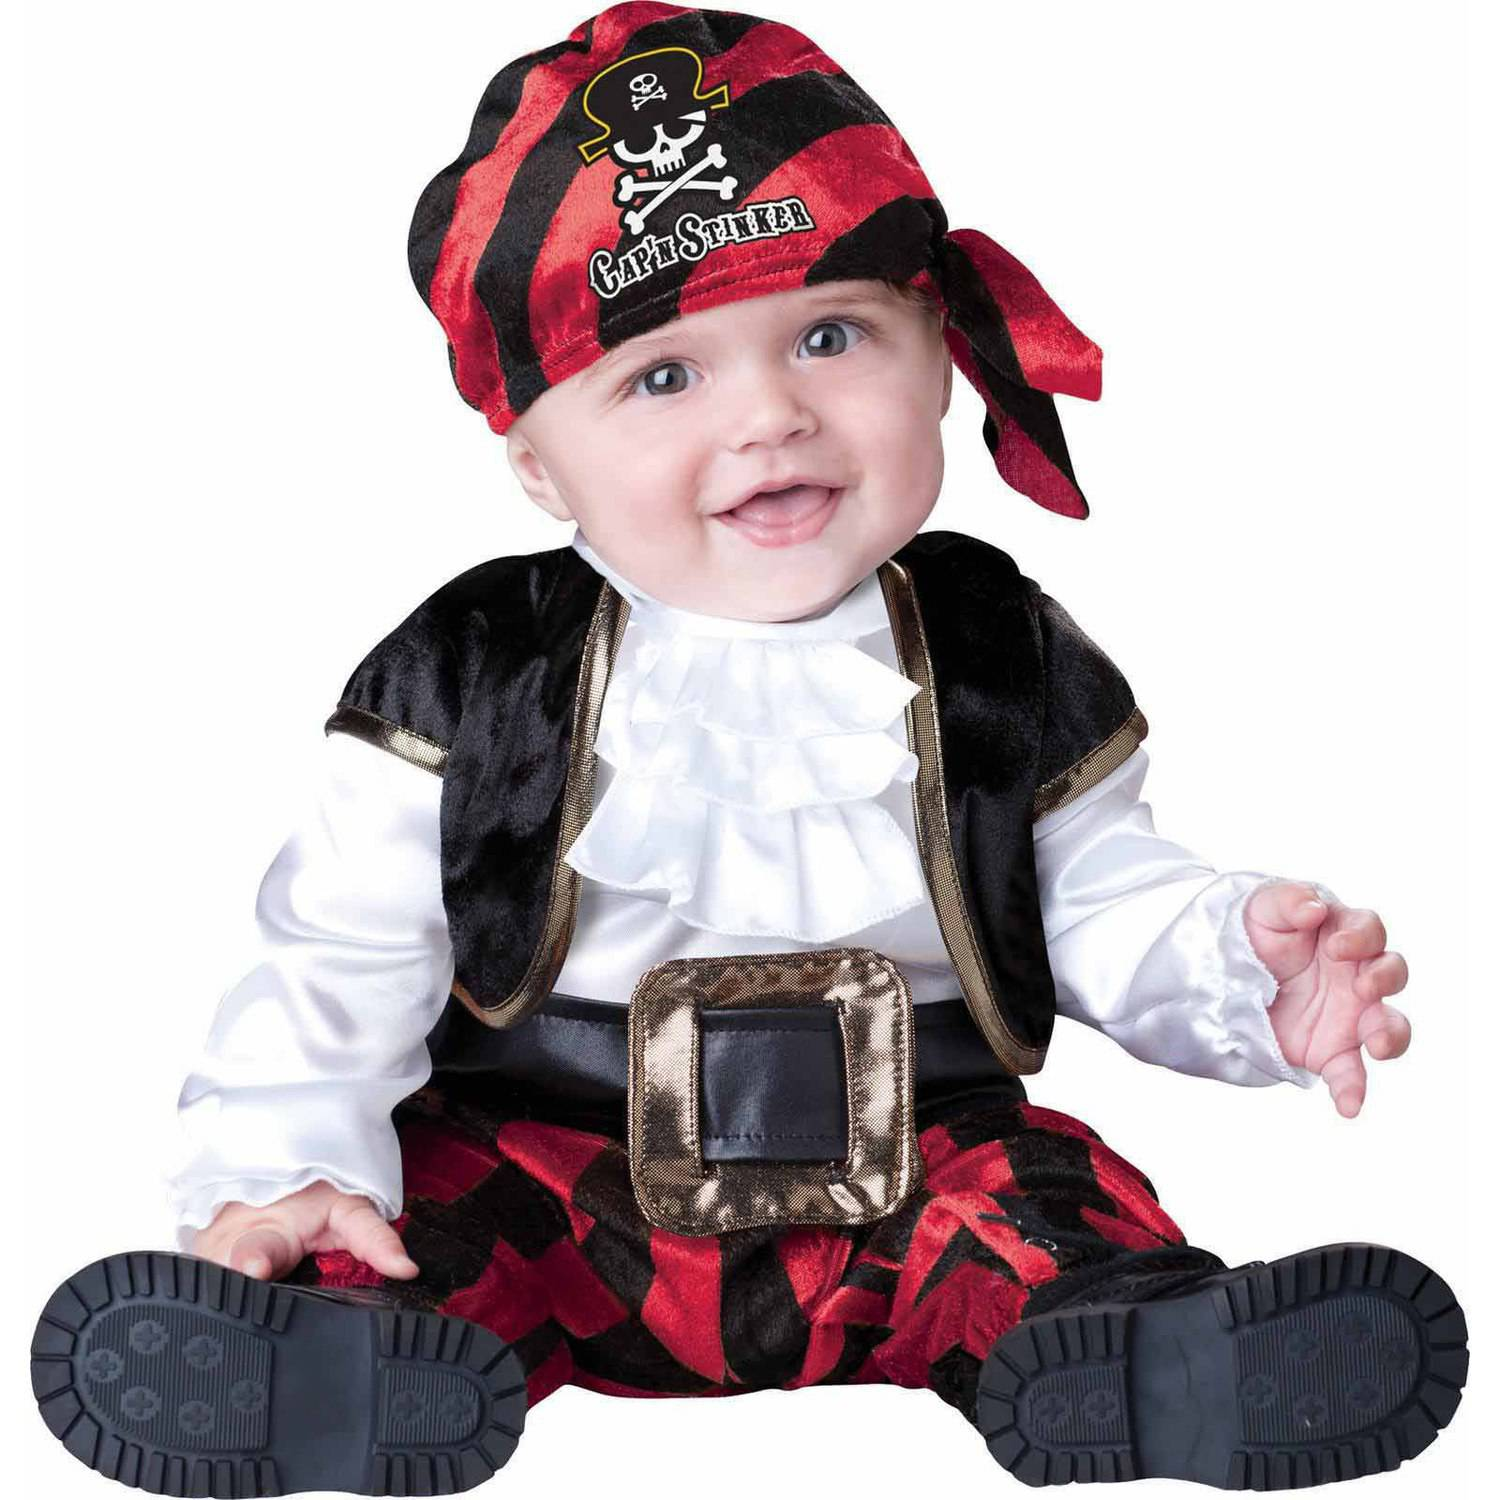 Cap'n Stinker Pirate Boys' Toddler Halloween Costume by Generic